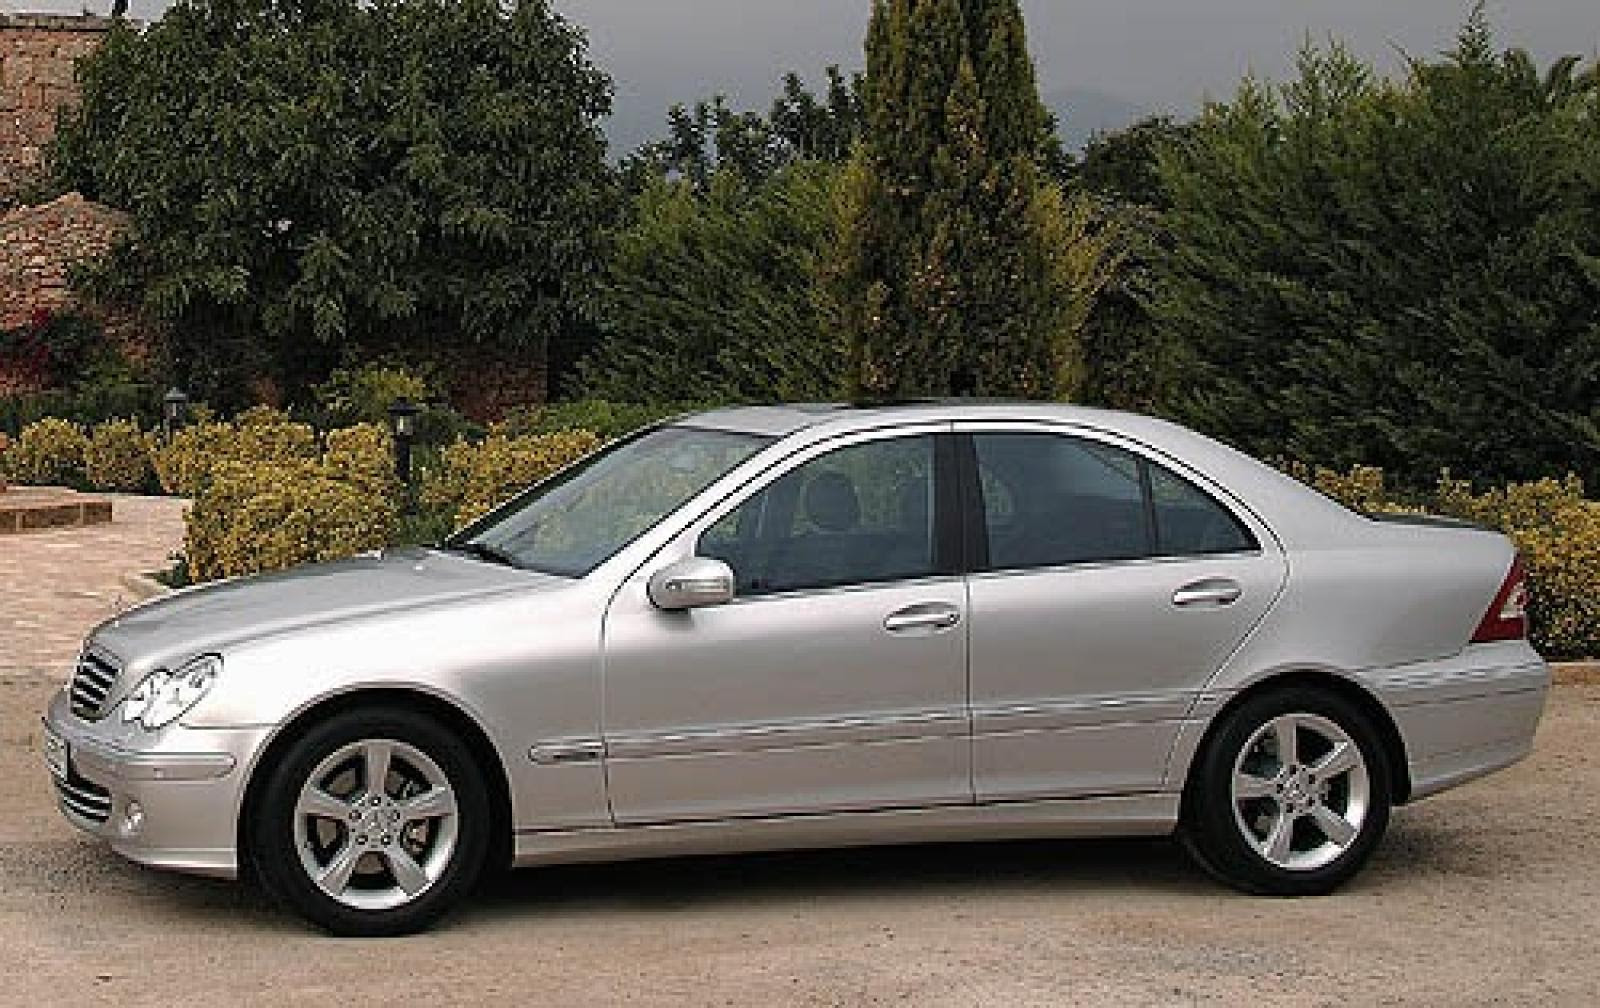 2006 Mercedes-Benz C-Class - Information and photos - Zomb ...